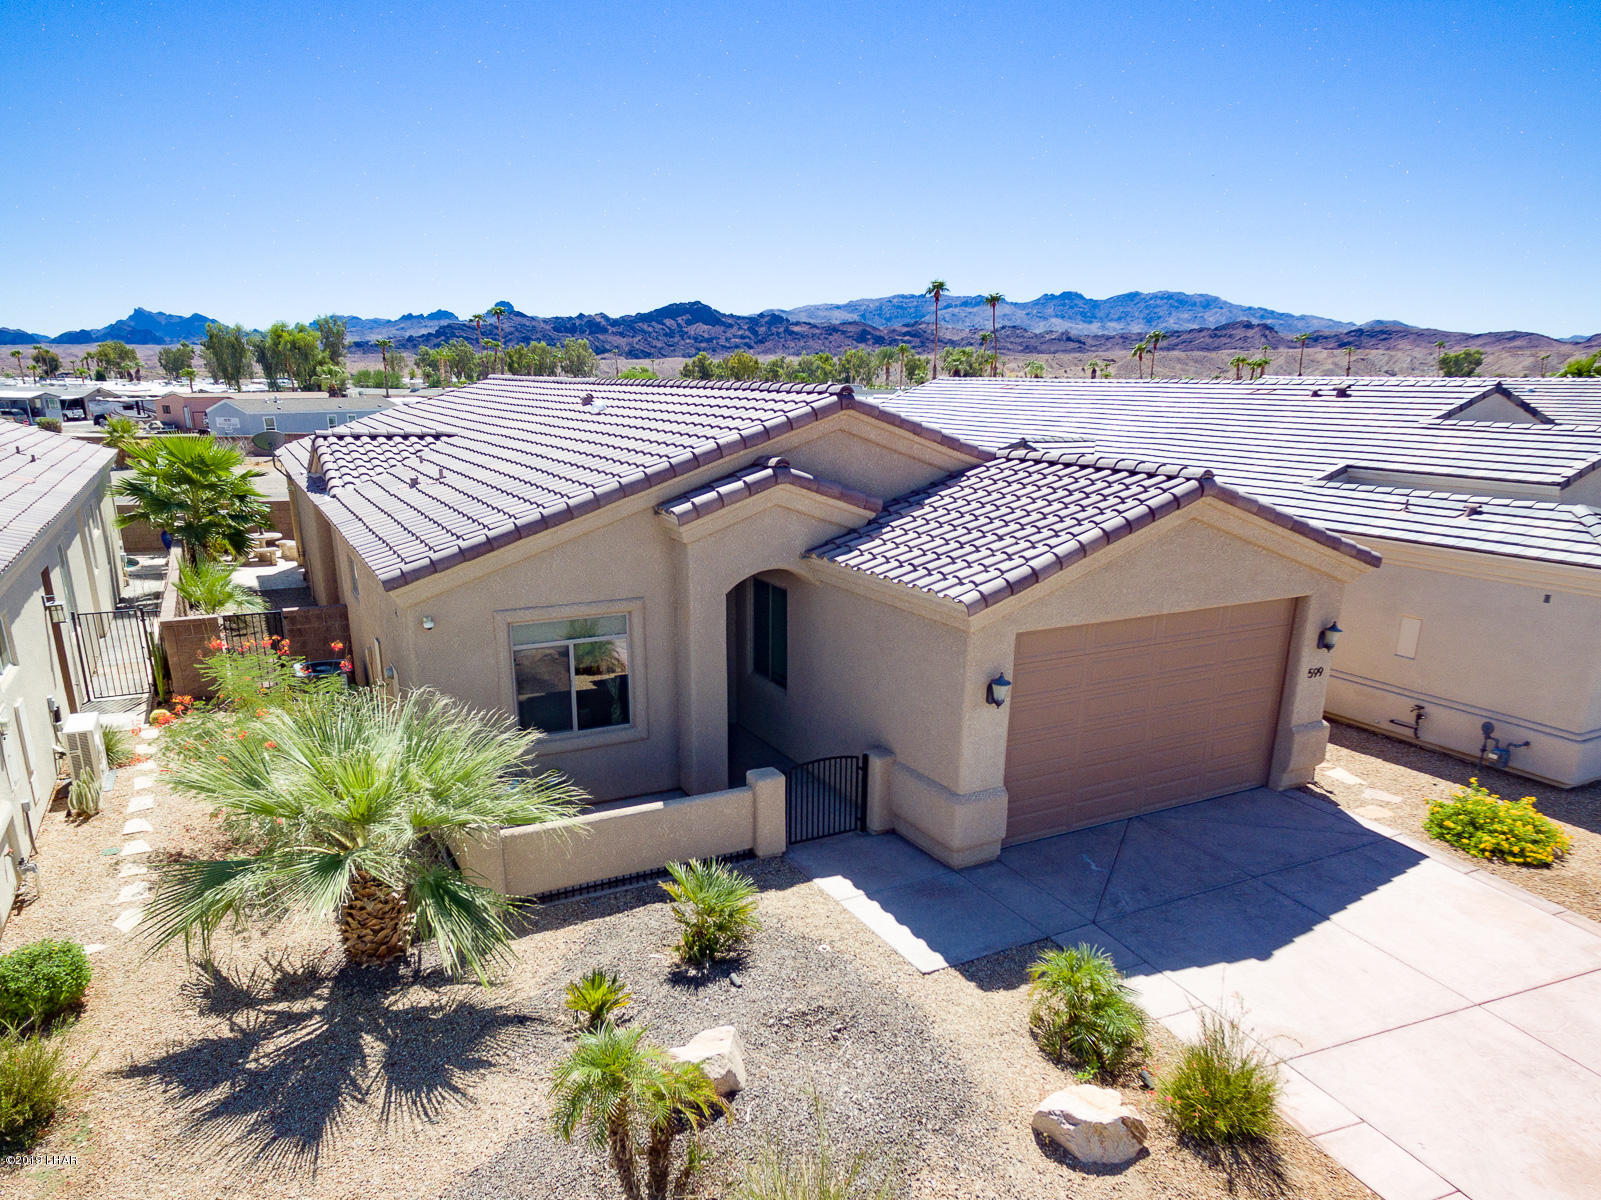 Photo of 599 Veneto Loop, Lake Havasu City, AZ 86403